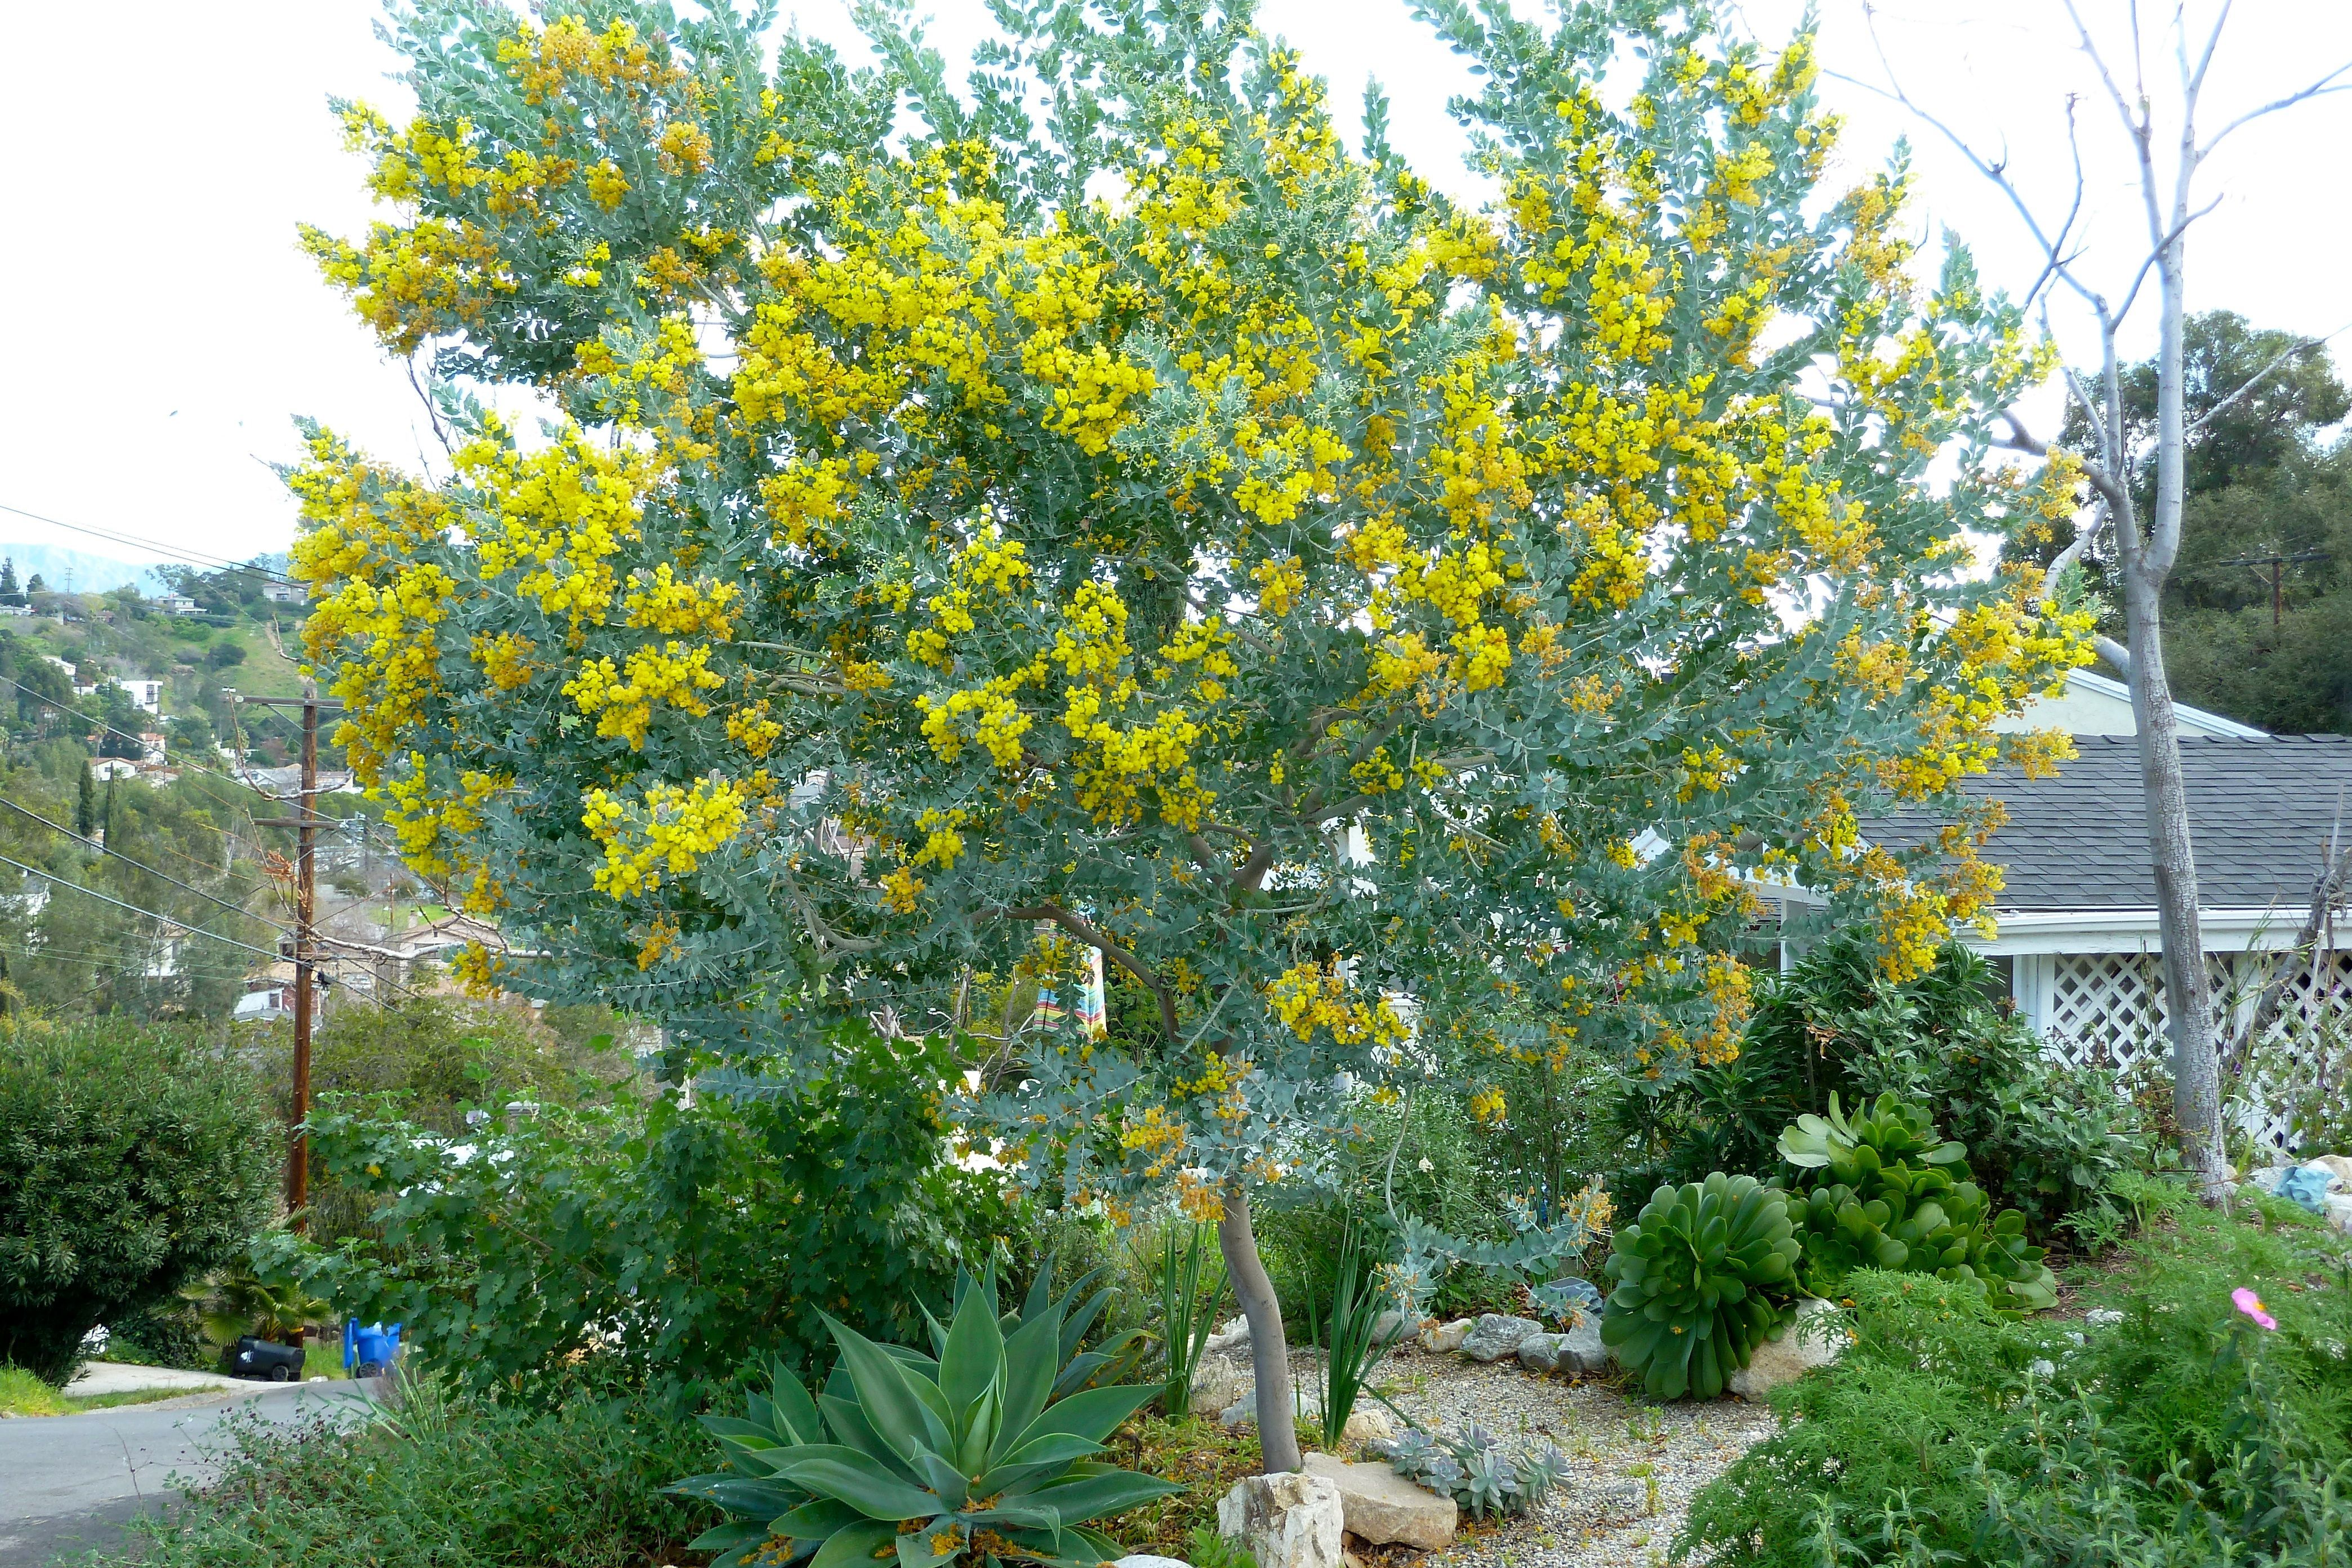 The sun sets on december and rises on january fan by sarah lovgren acacia podalyriifolia pearl acacia queensland silver wattle soft furry silvery leaves beautiful fuzzy yellow flowers green bark my fave tree mightylinksfo